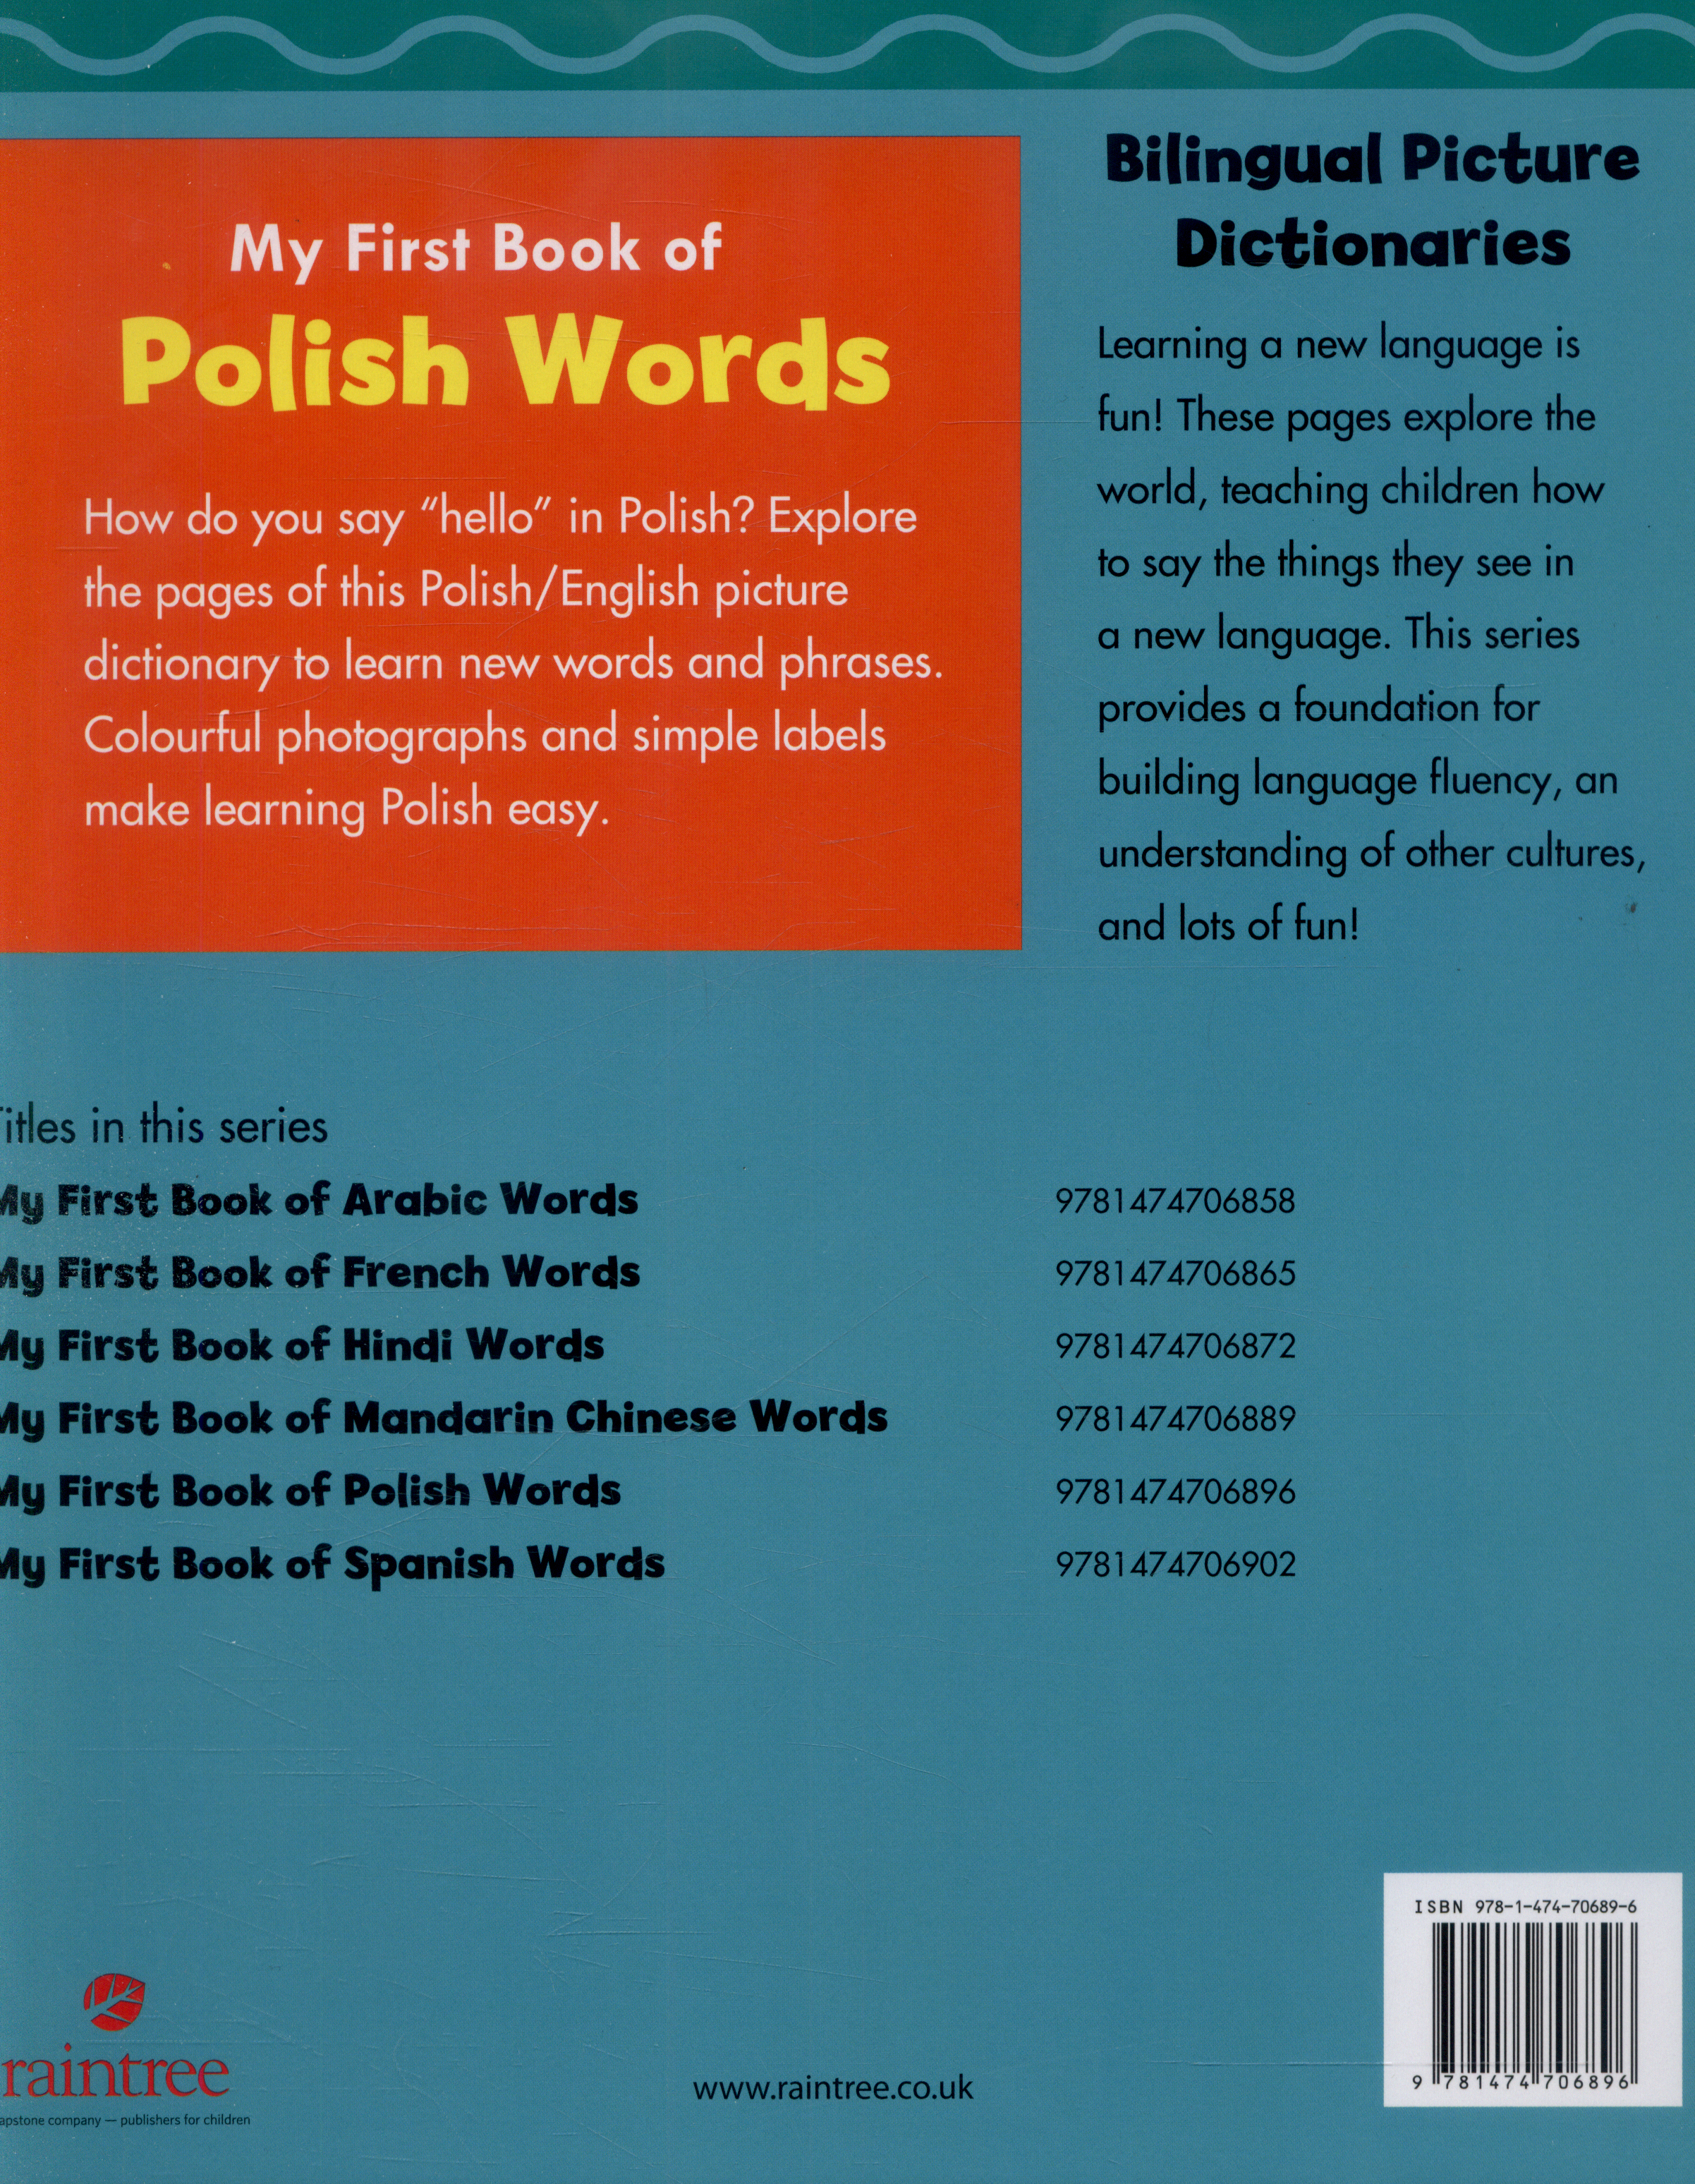 My first book of Polish words by Kudela, Katy R  (9781474706896